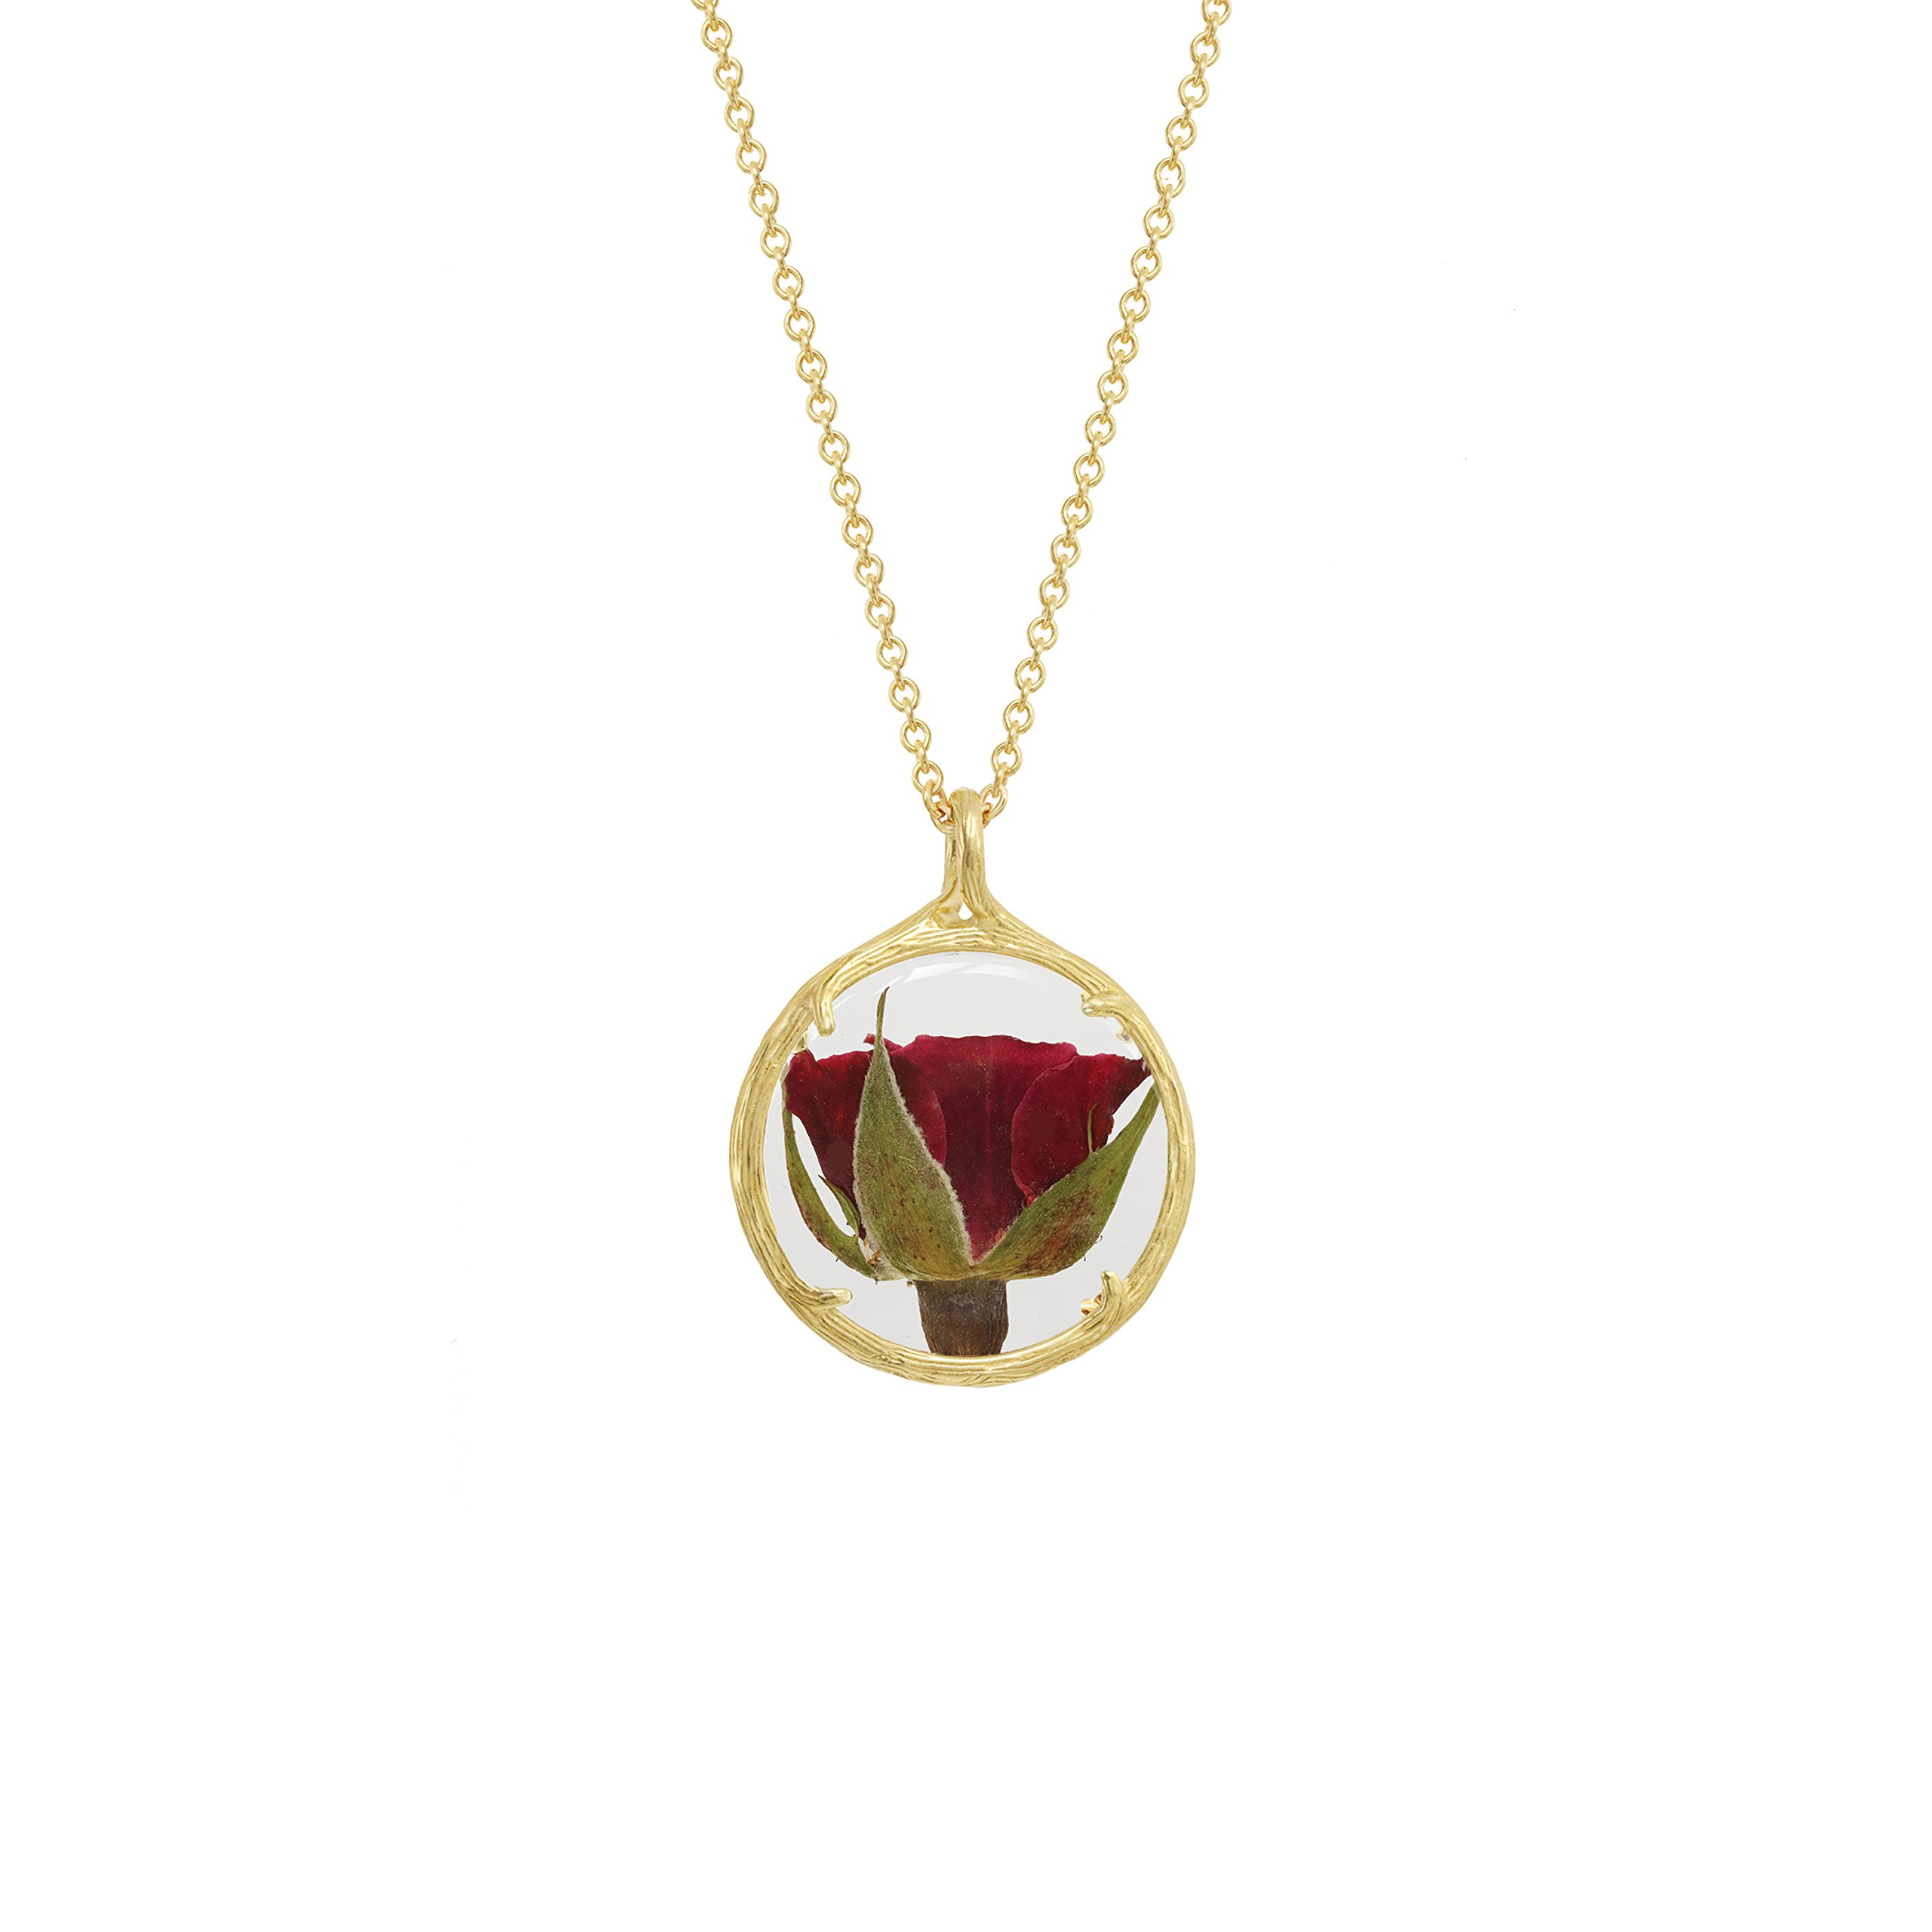 Botanical Pendant Necklace with Delicate Dried Flowers in Glass Charm (Rose, gold-plated-base)